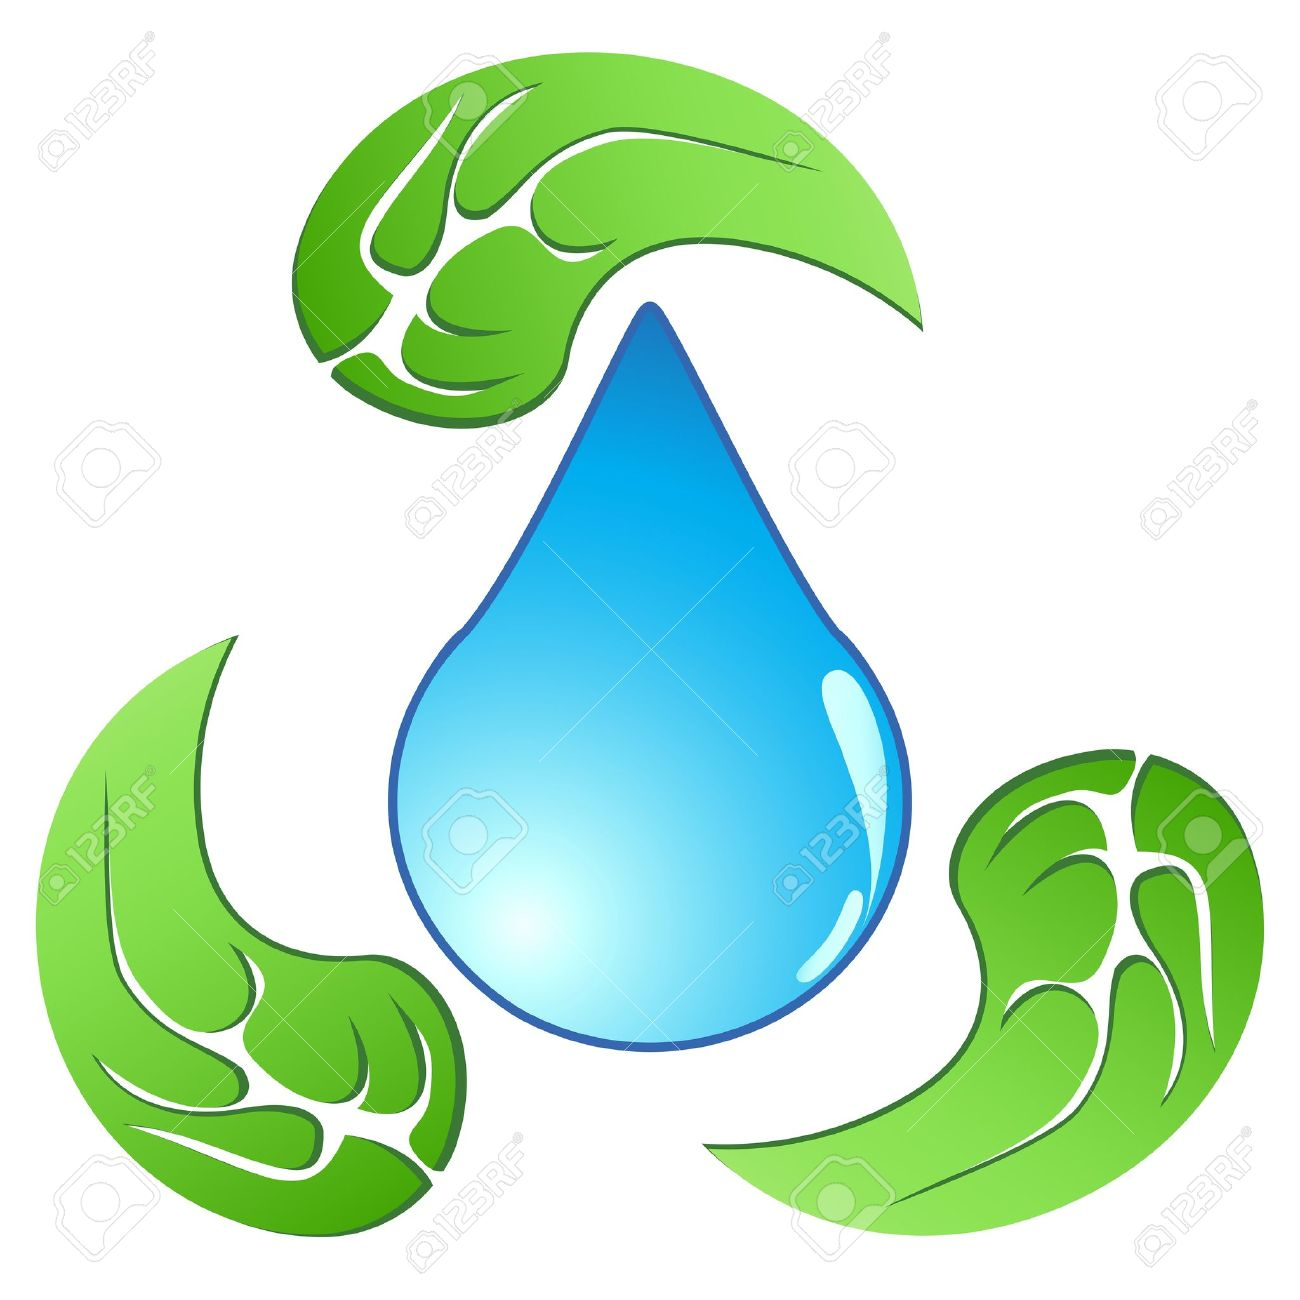 The Recycling Symbol Of The Water Drop Around With Leaves Royalty